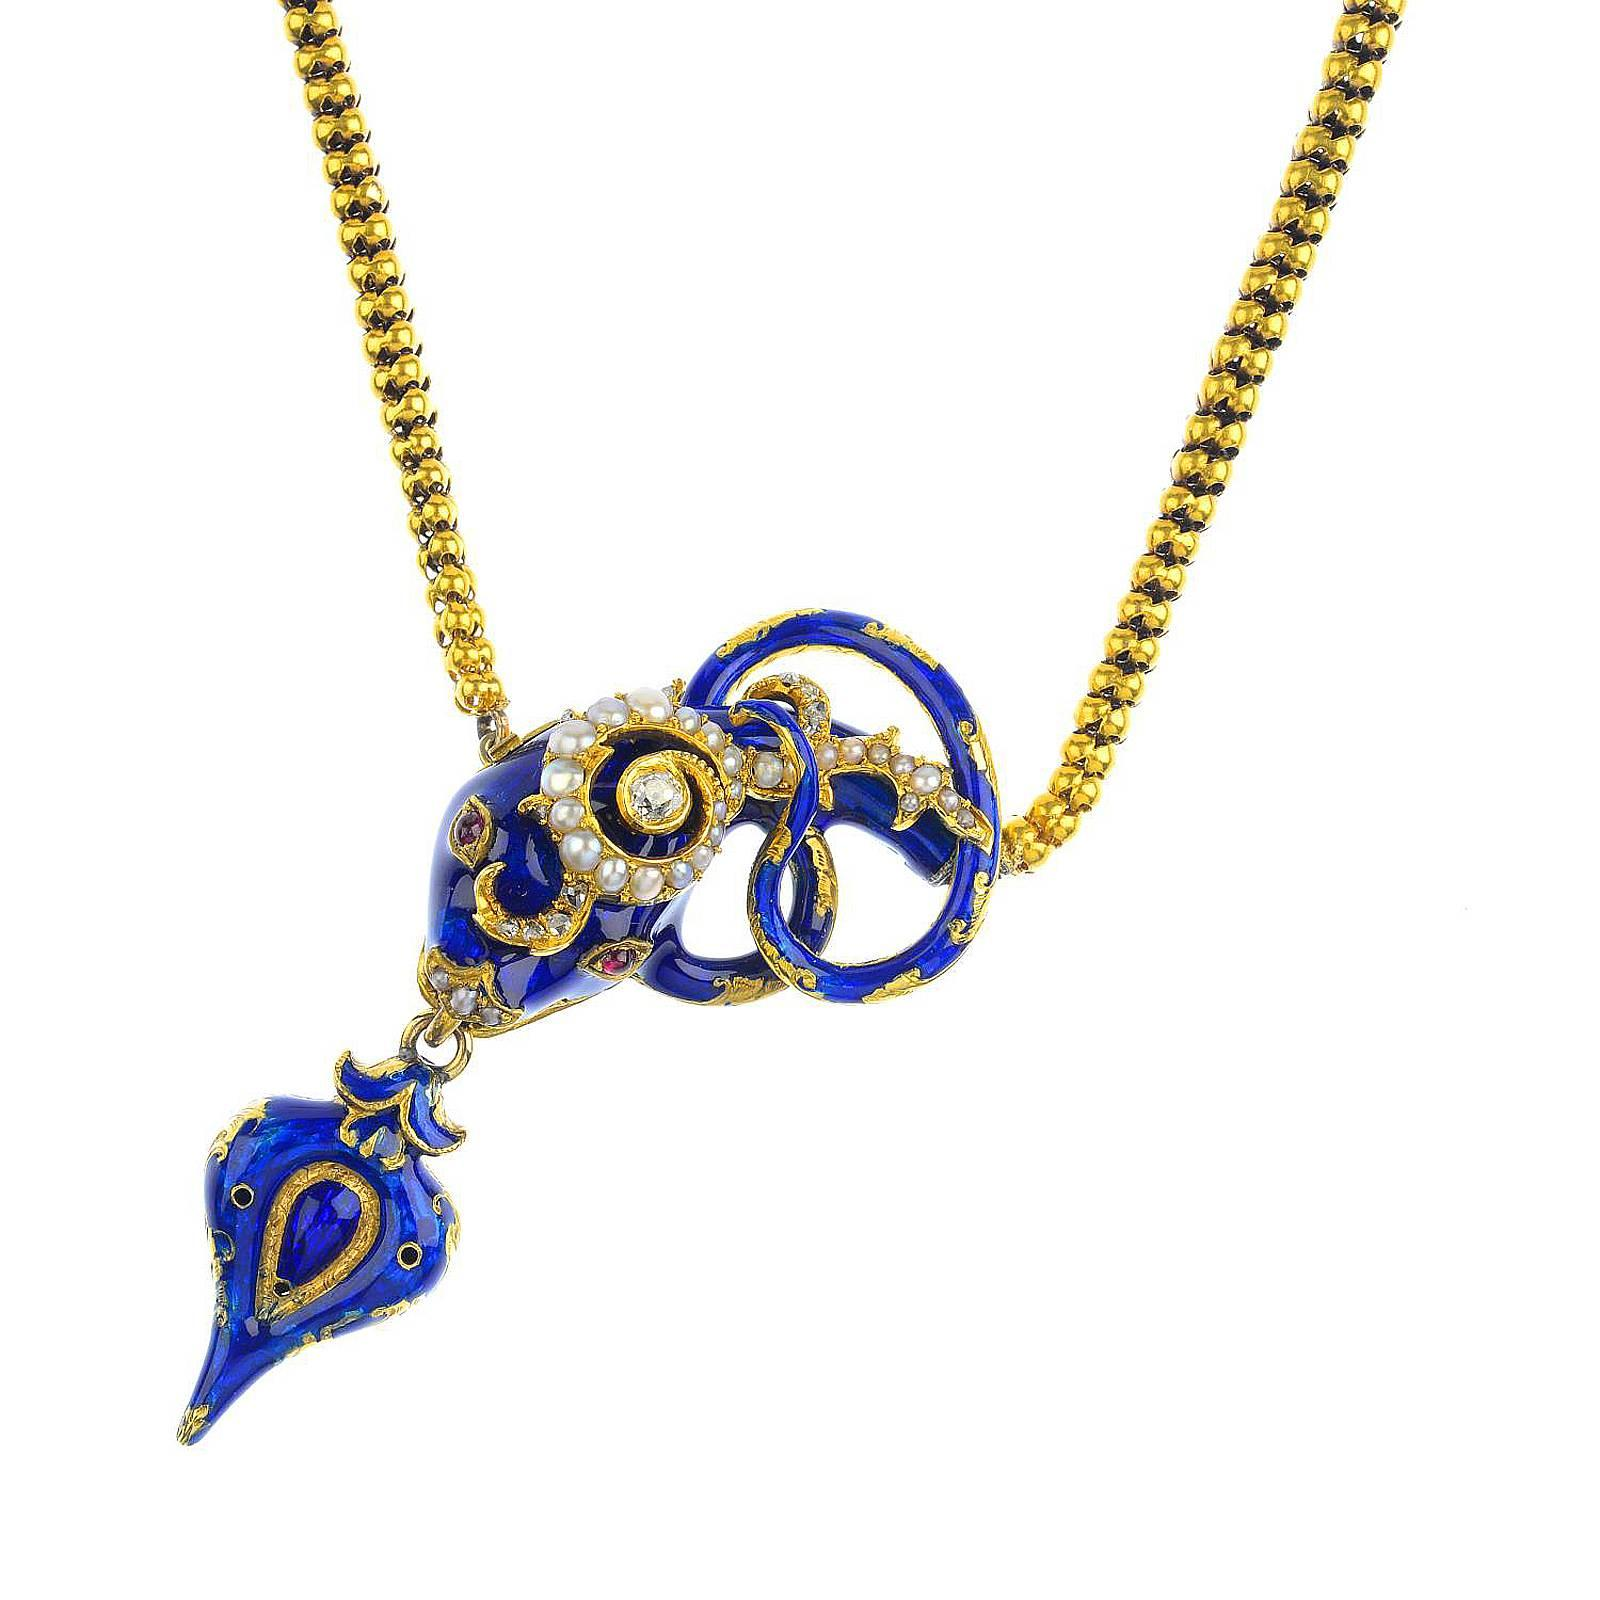 s lyst in crystal necklace metallic chanel gold enamel jewelry women